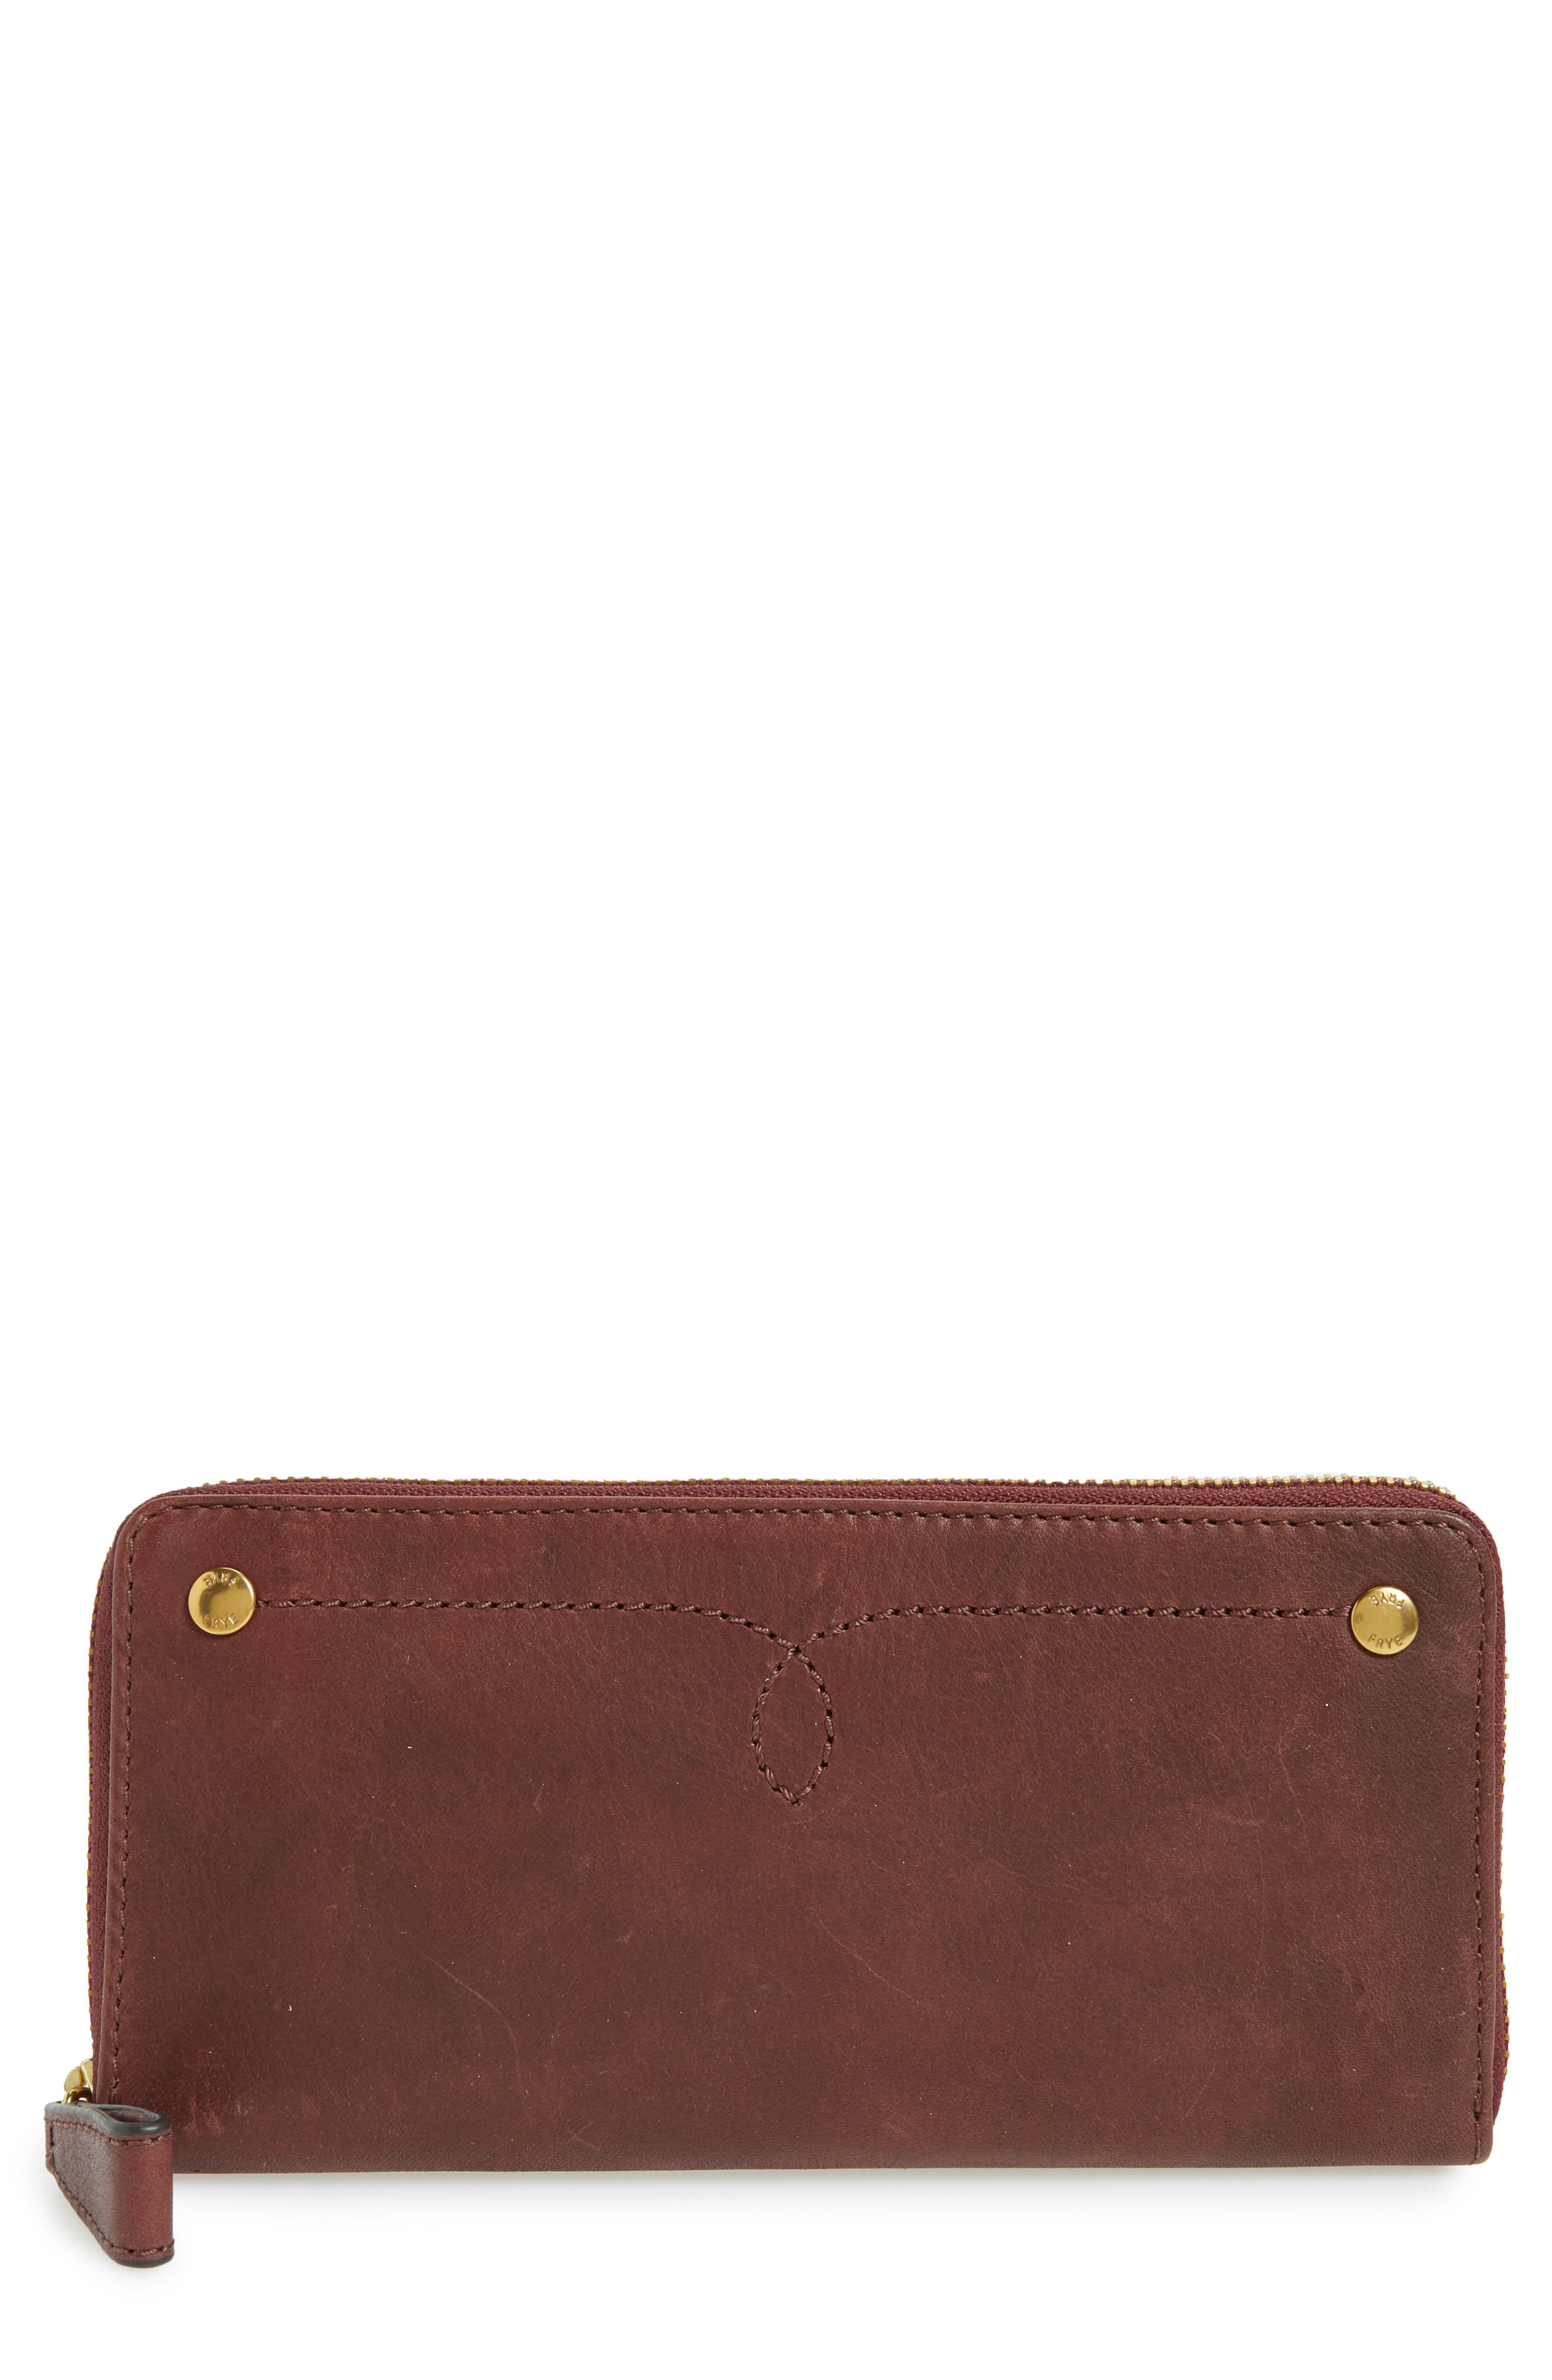 Main Image - Frye Campus Rivet Leather Continental Zip Wallet